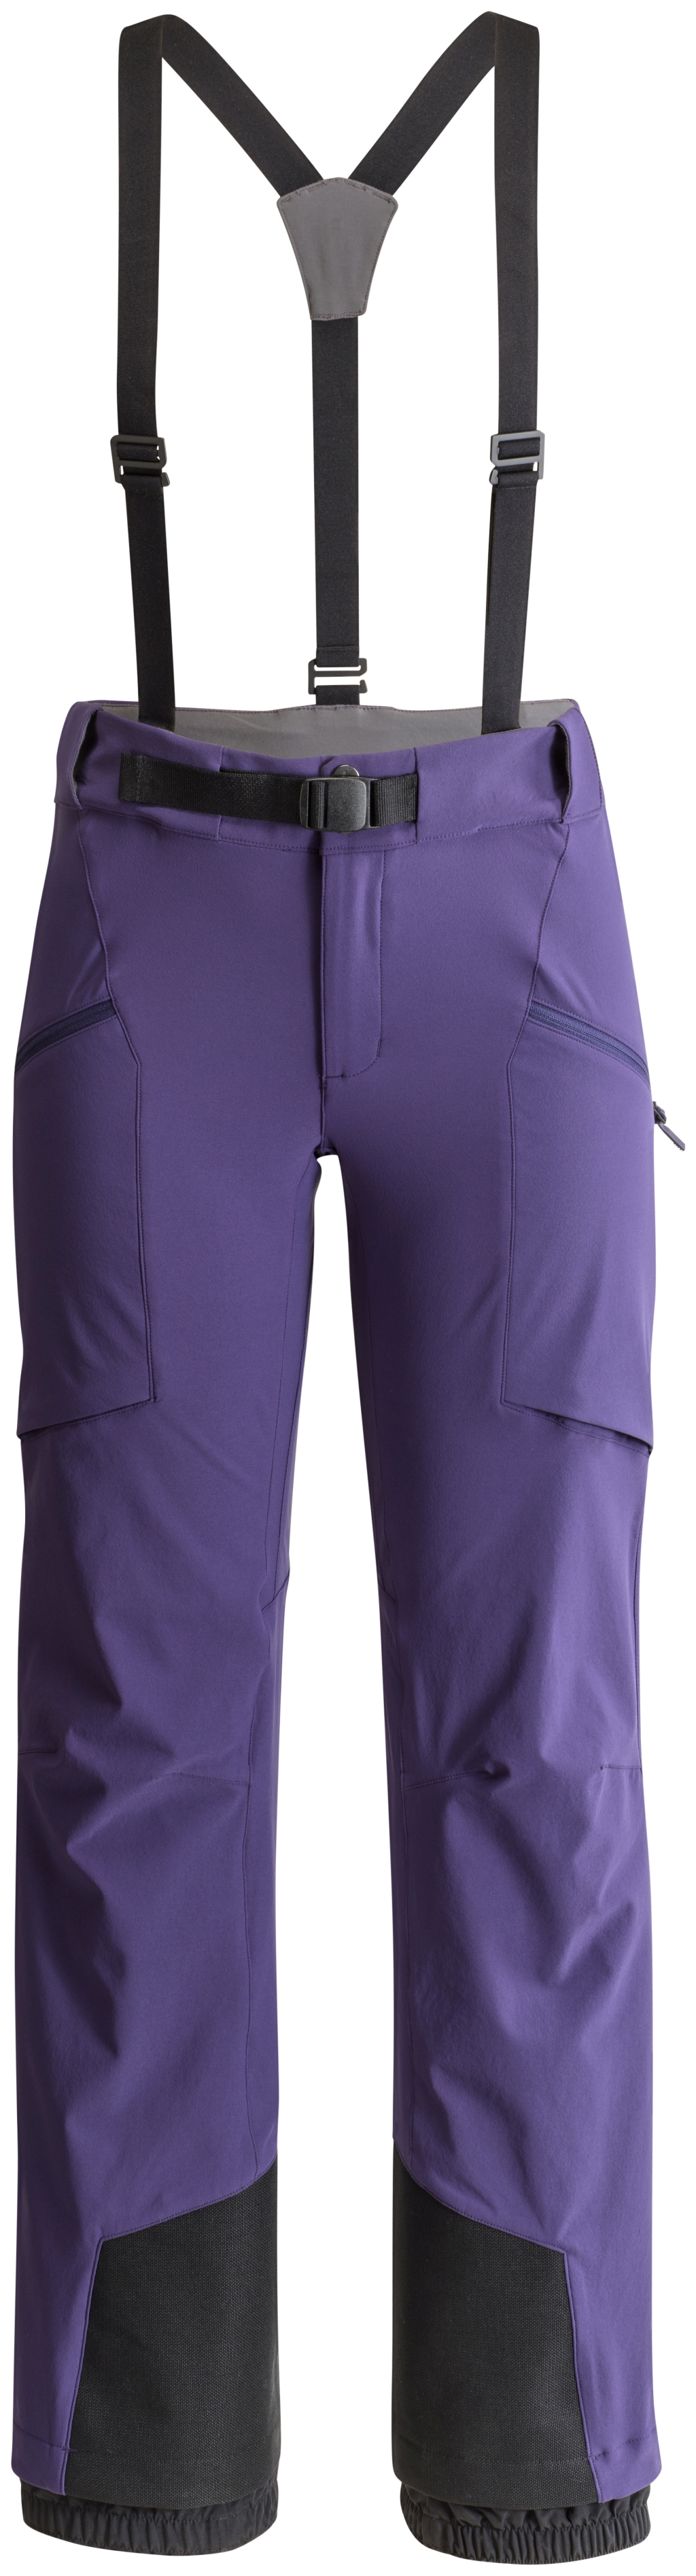 Black Diamond Dawn Patrol Ski Touring Pants Women's Nightshade-30